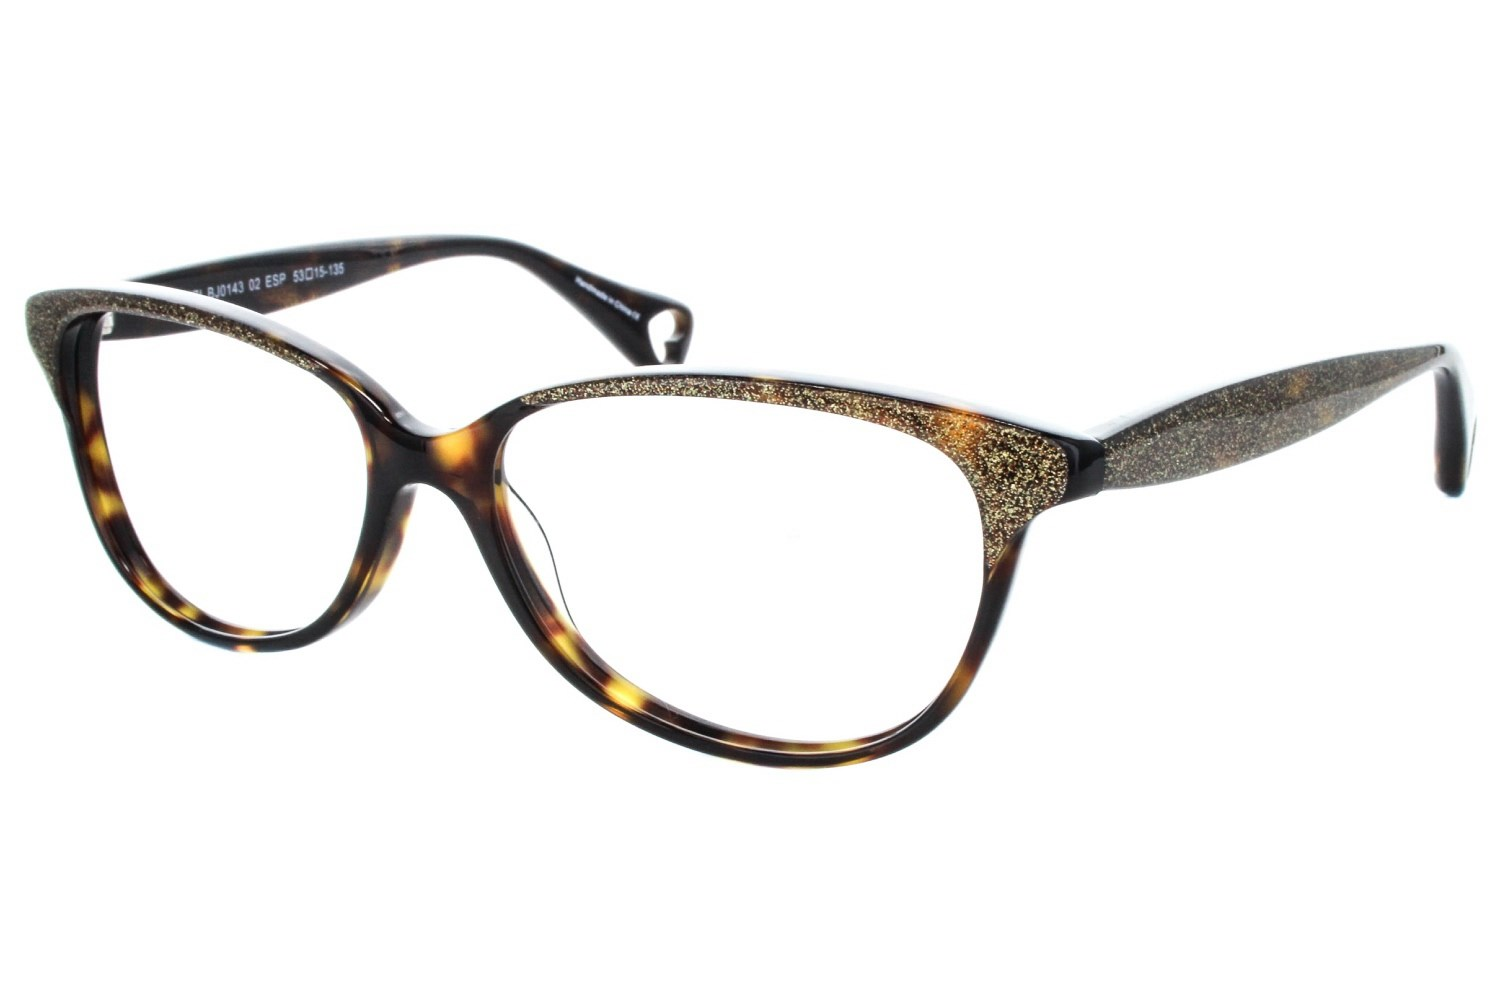 1b2a1f3dcedf Betsey Johnson Paparazzi Prescription Eyeglasses - properopticallook